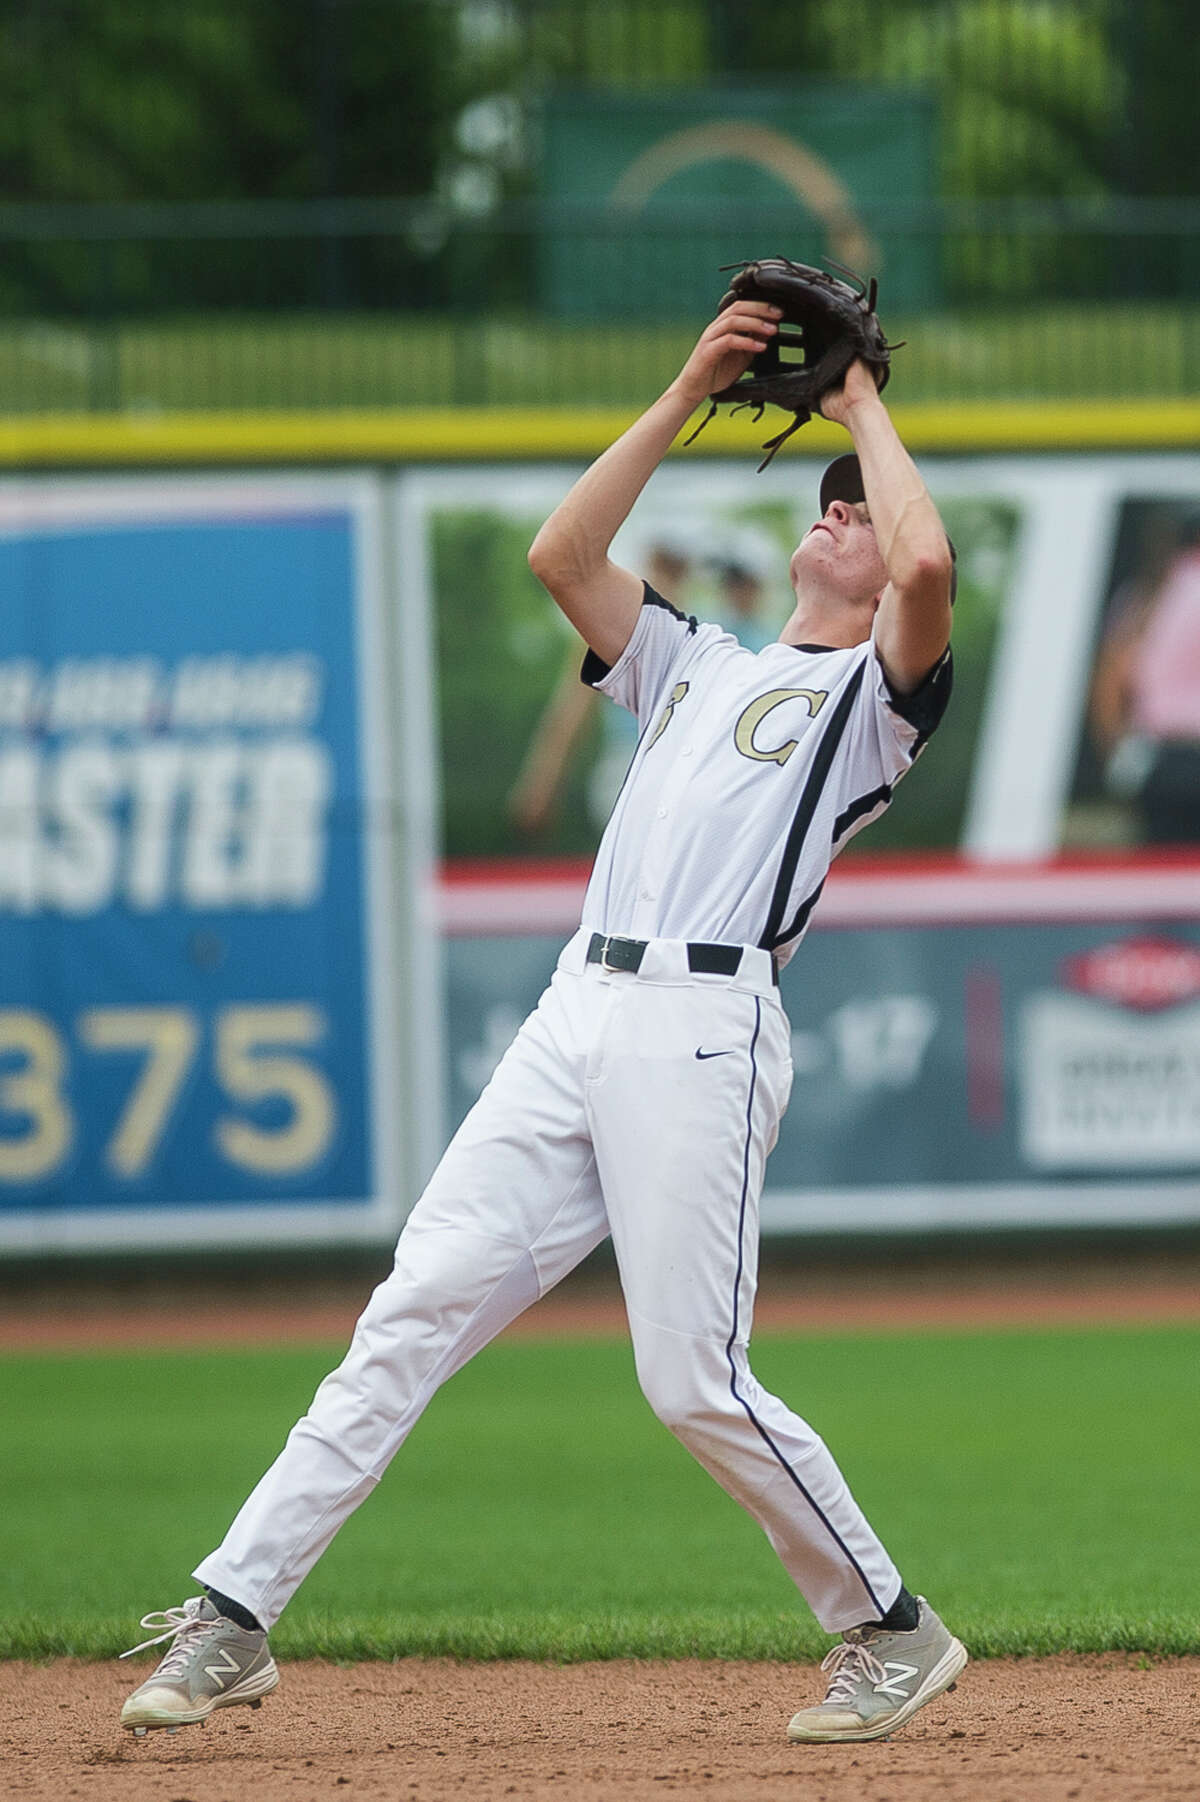 Bullock Creek's Jacob Claus catches a pop-up during a game against Dow Tuesday, May 25, 2021 at Dow Diamond in Midland. (Katy Kildee/kkildee@mdn.net)